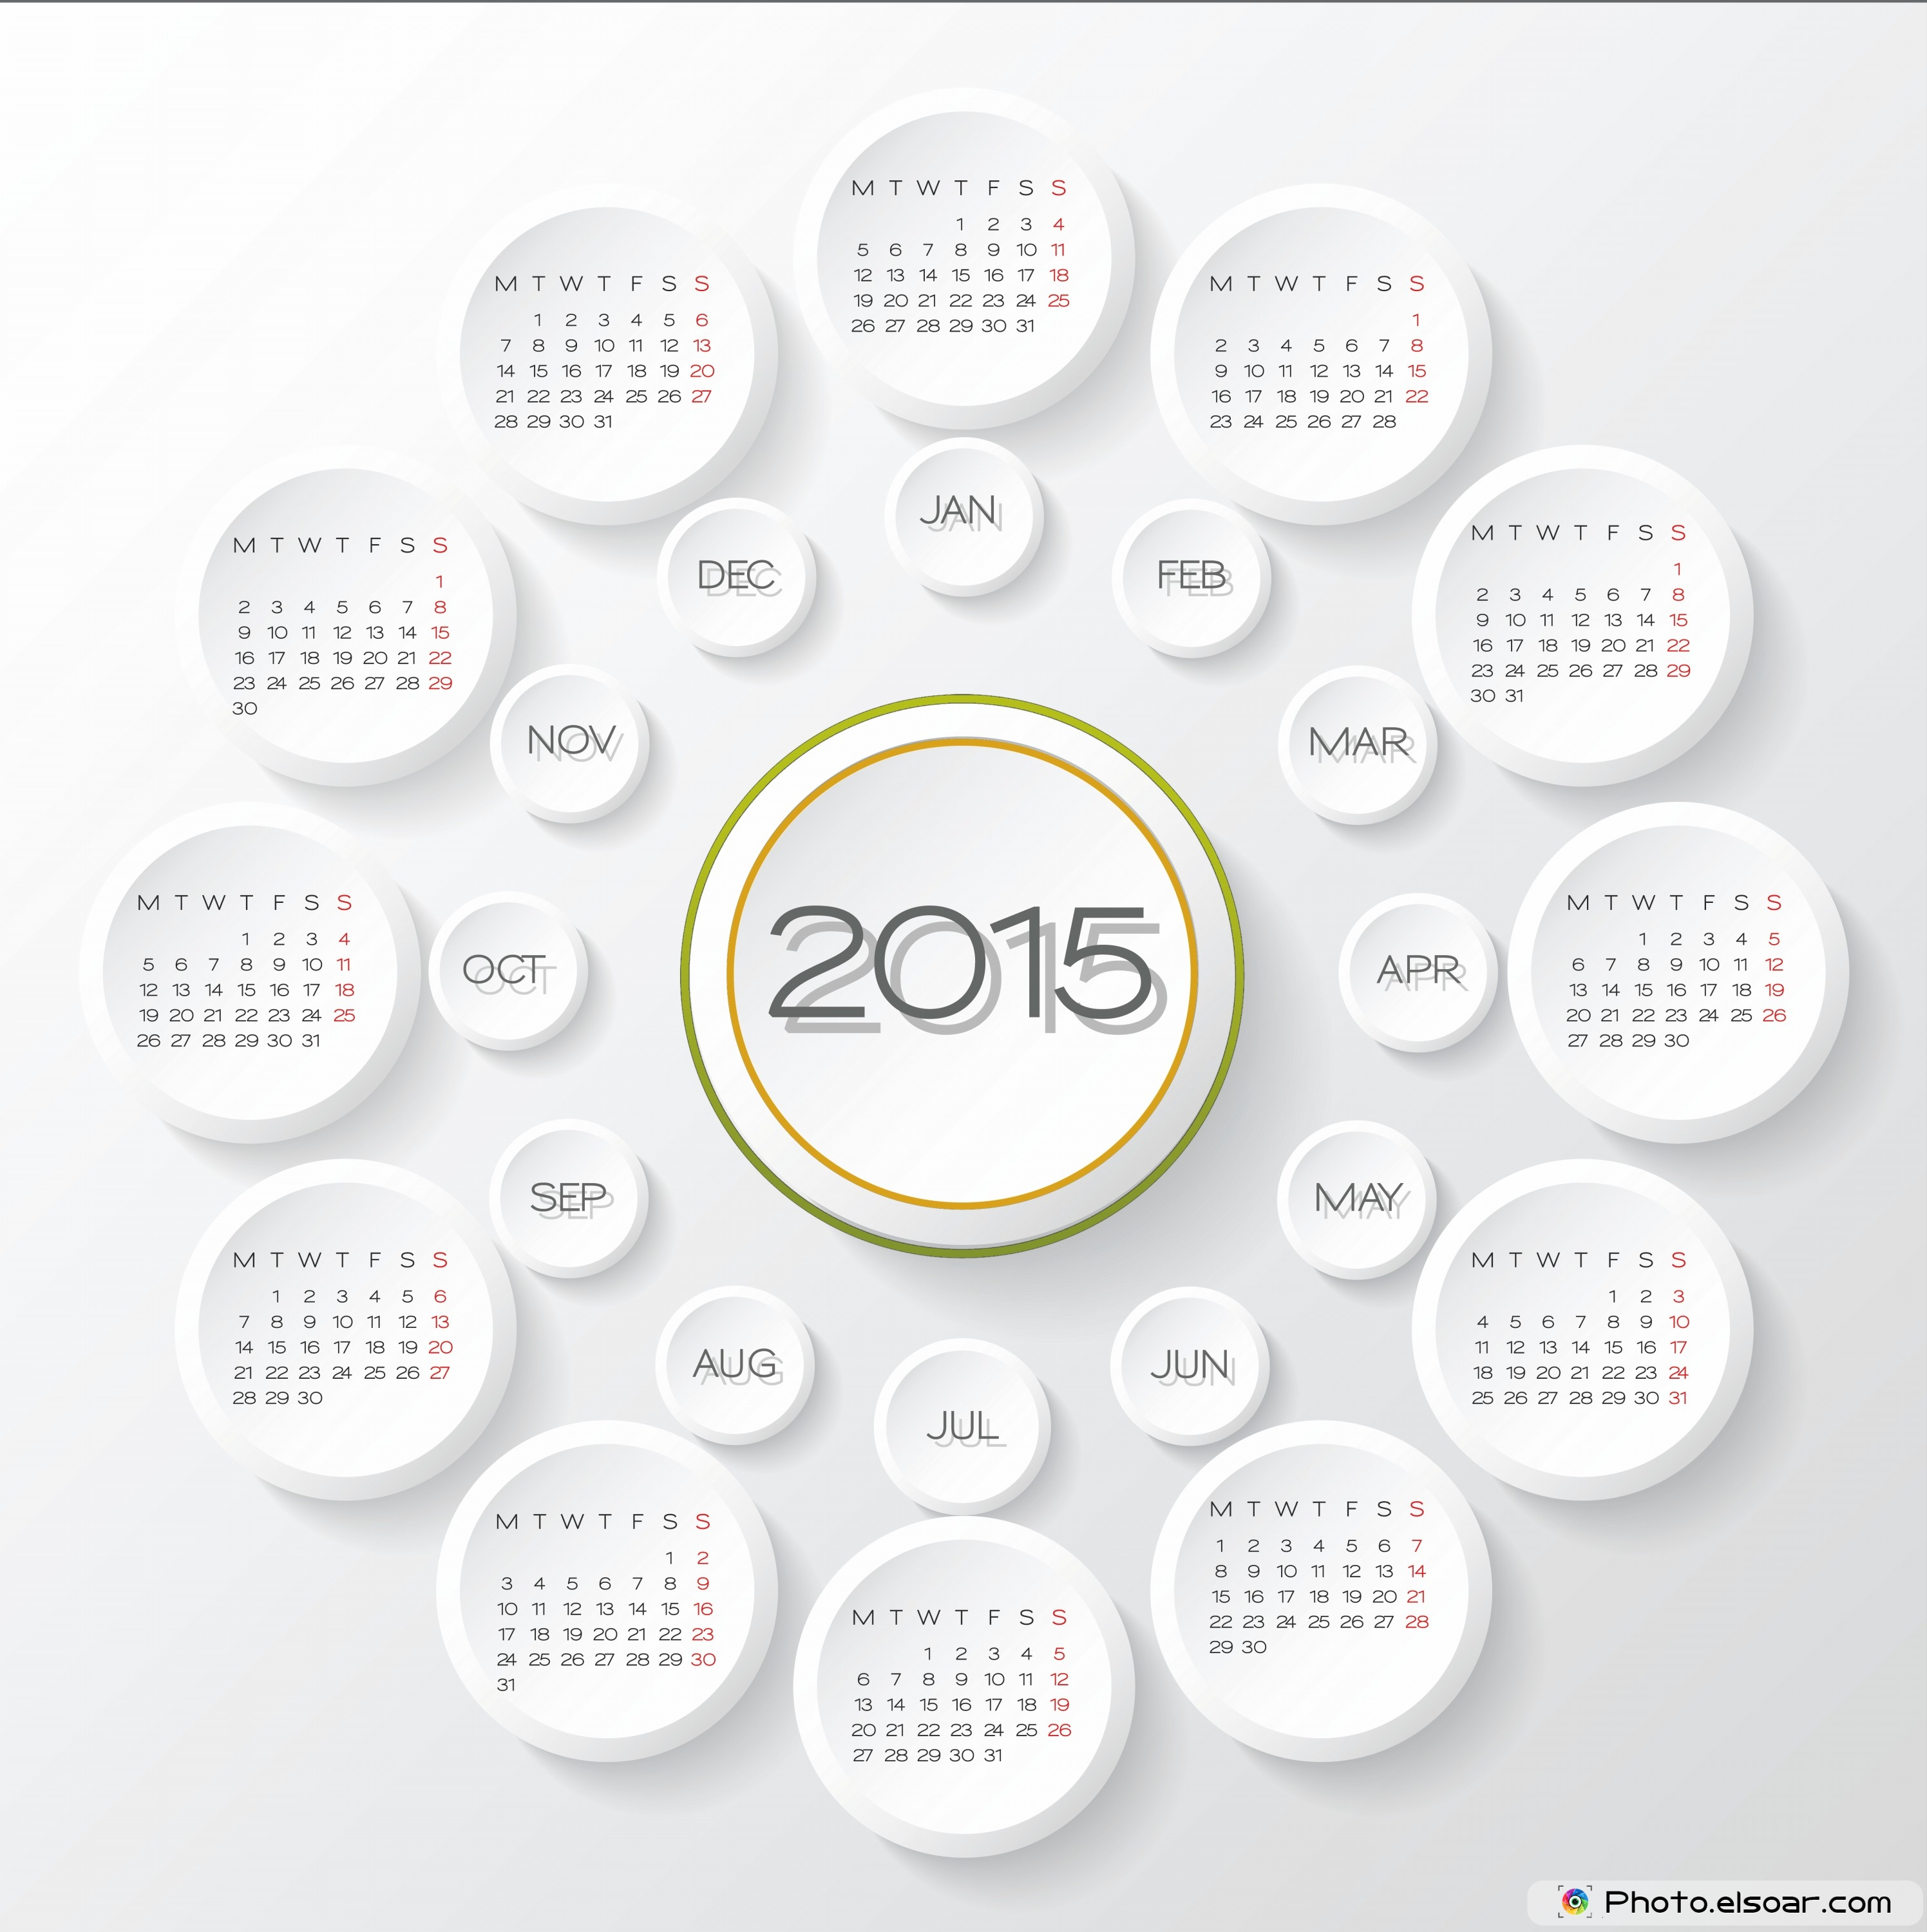 Printable Yearly Calendars For 2015 – Different Ideas • Elsoar